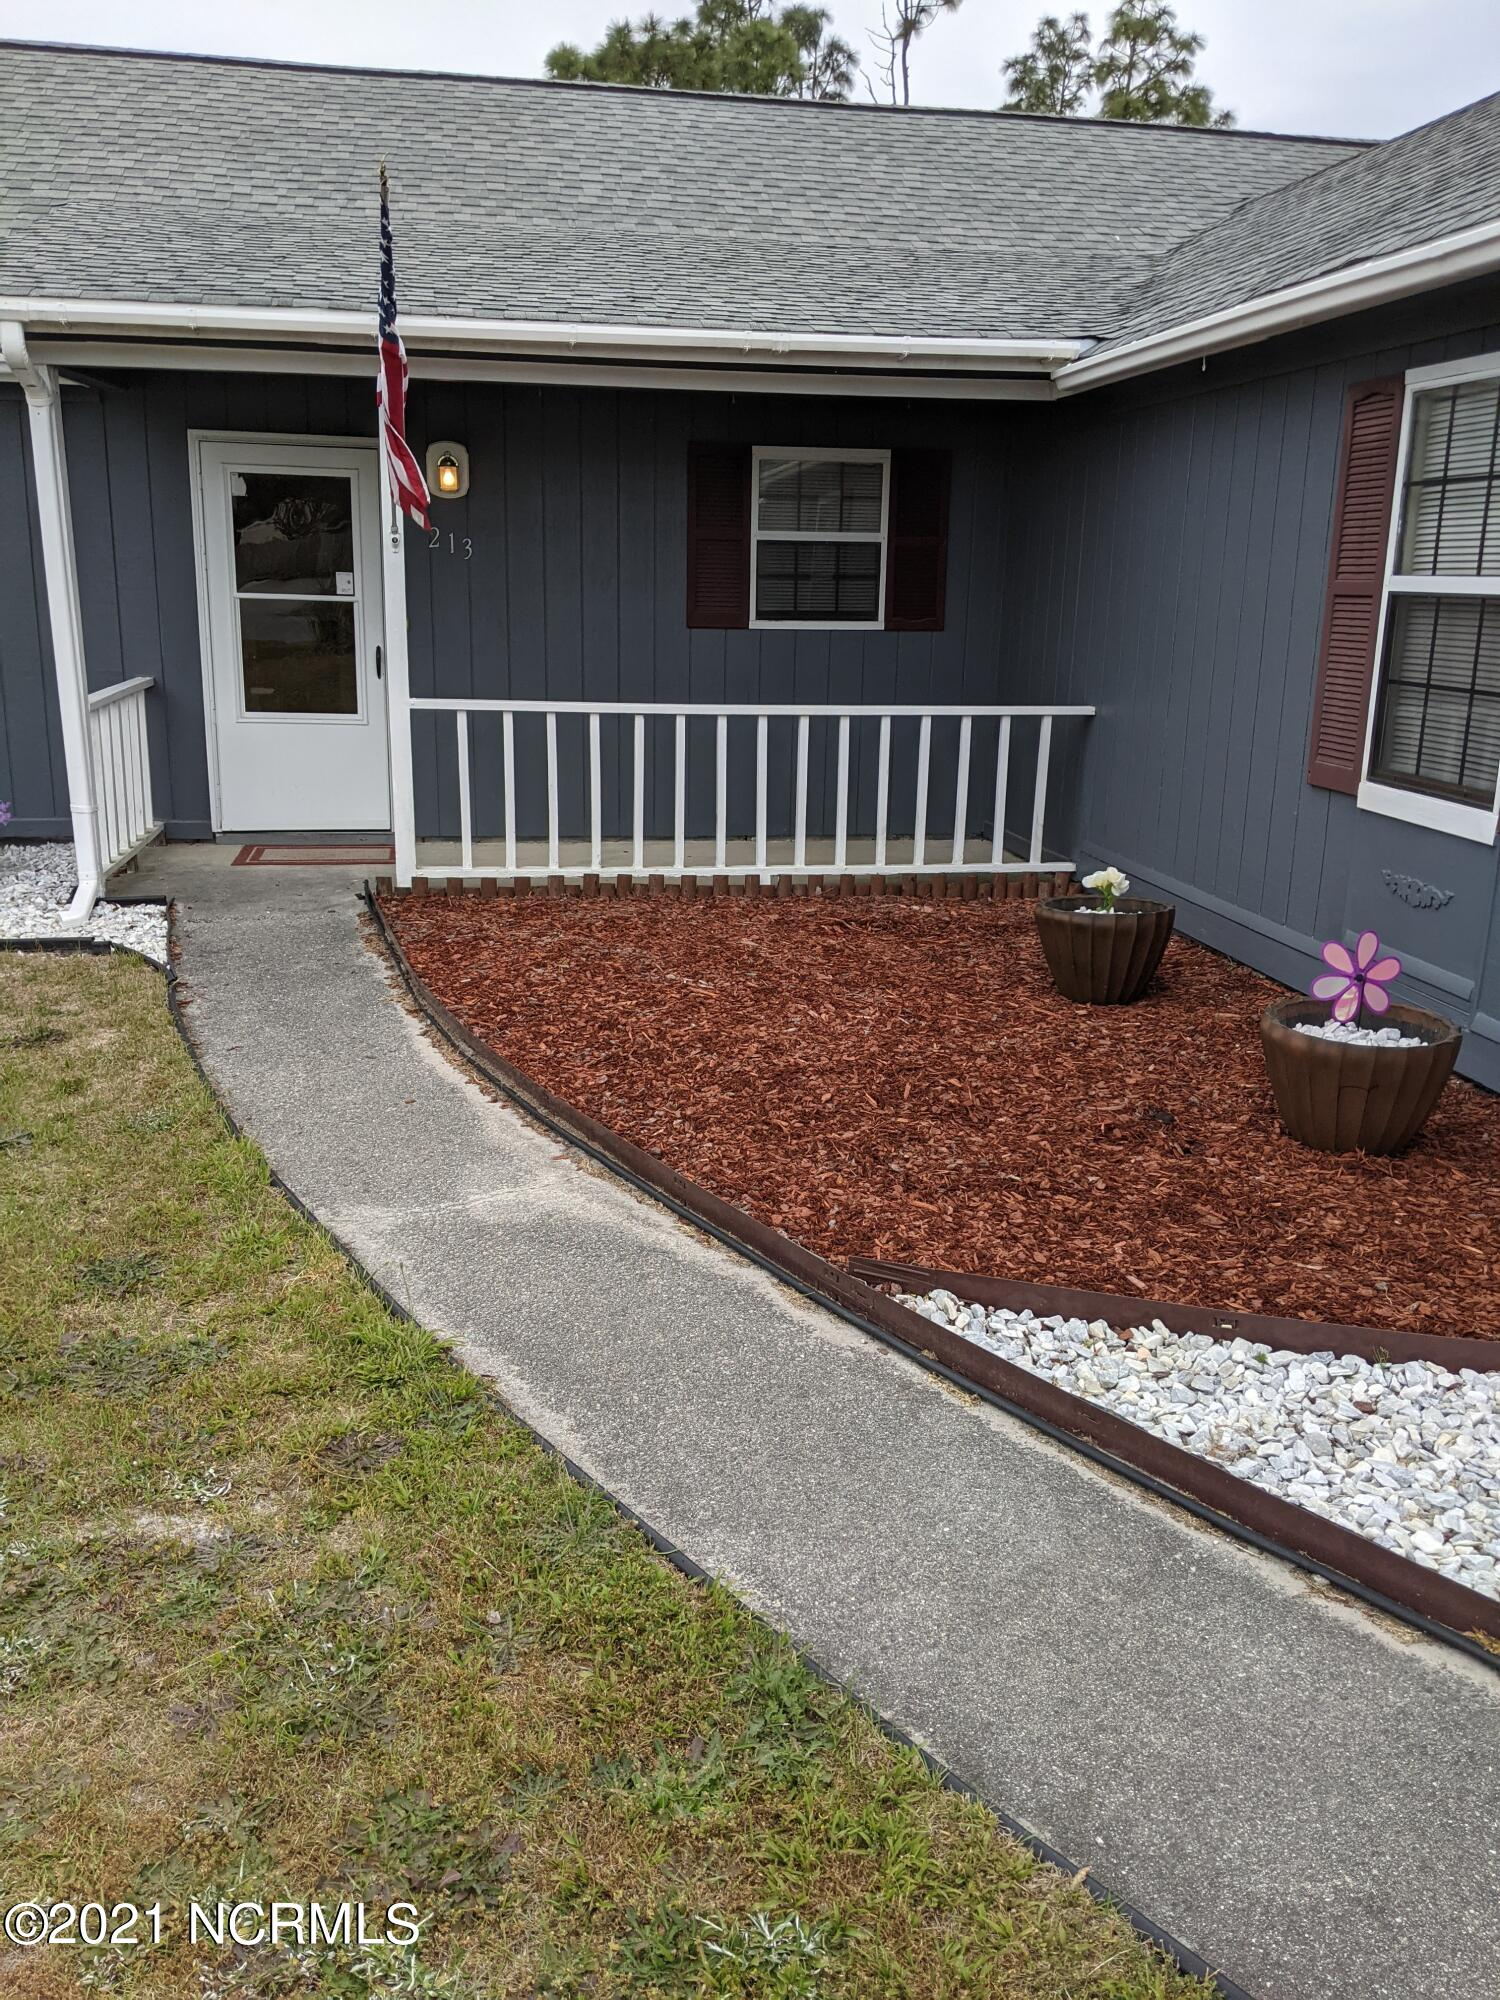 Welcome to Hubert!! This home is renovated and offers Open floor concept , split floor plan with vaulted ceilings , LVP flooring, walk in closet in master, new heat pump, fully fenced in back yard with a large deck for entertaining! the refrigerator in the garage will convey with the house! Get your offers in quick before this gets sold too!!